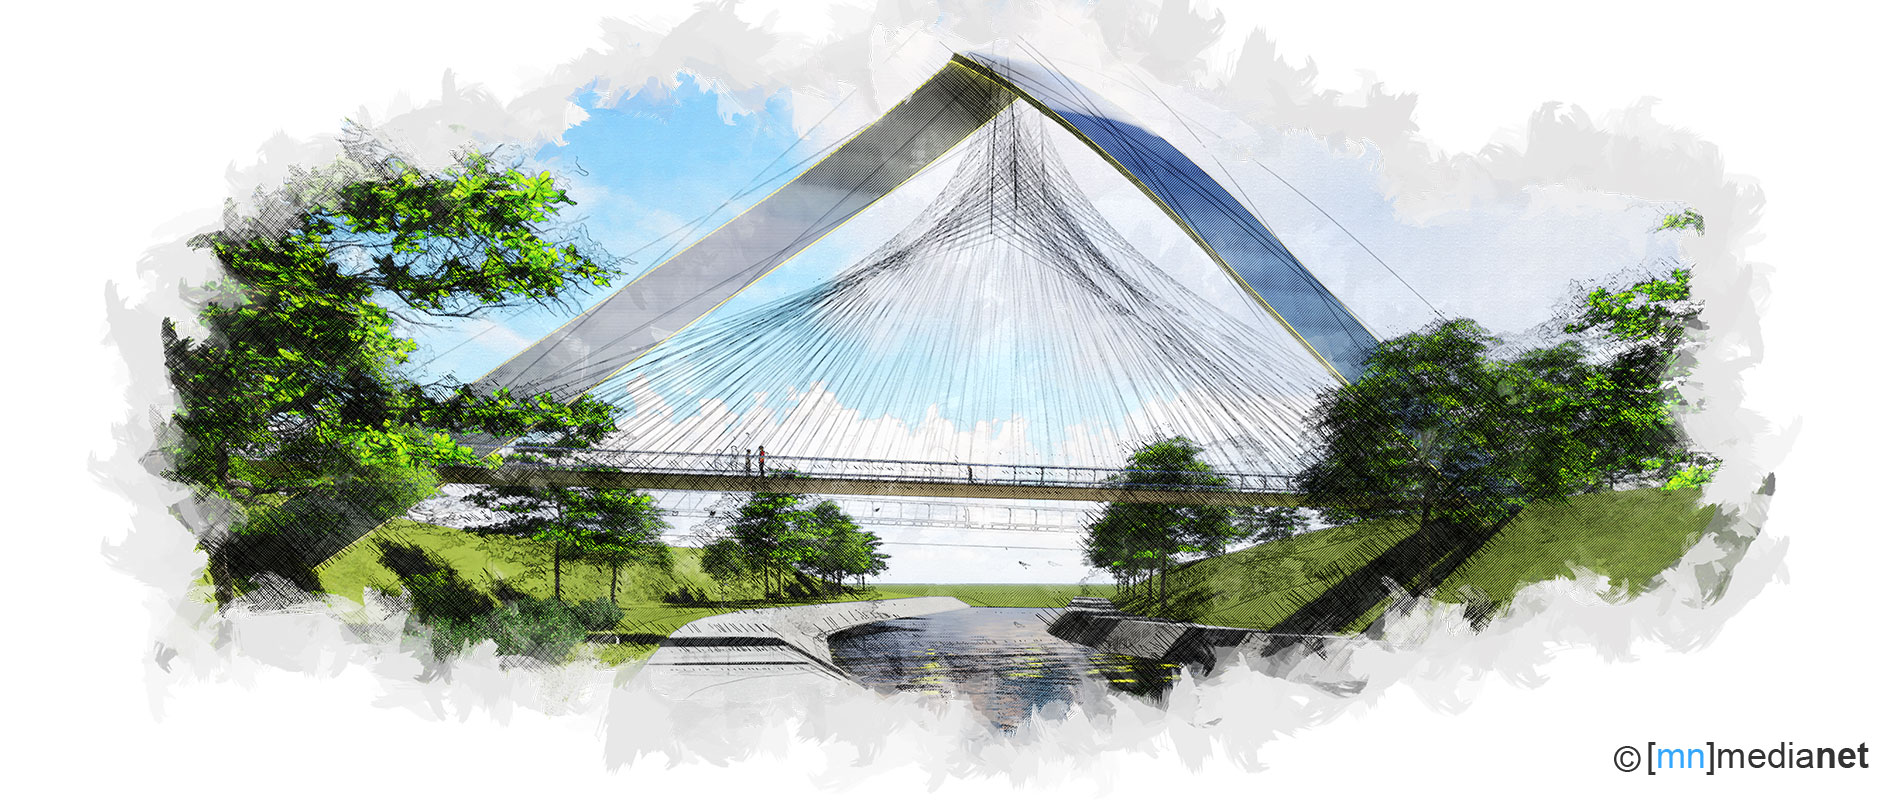 architect to design the bridge